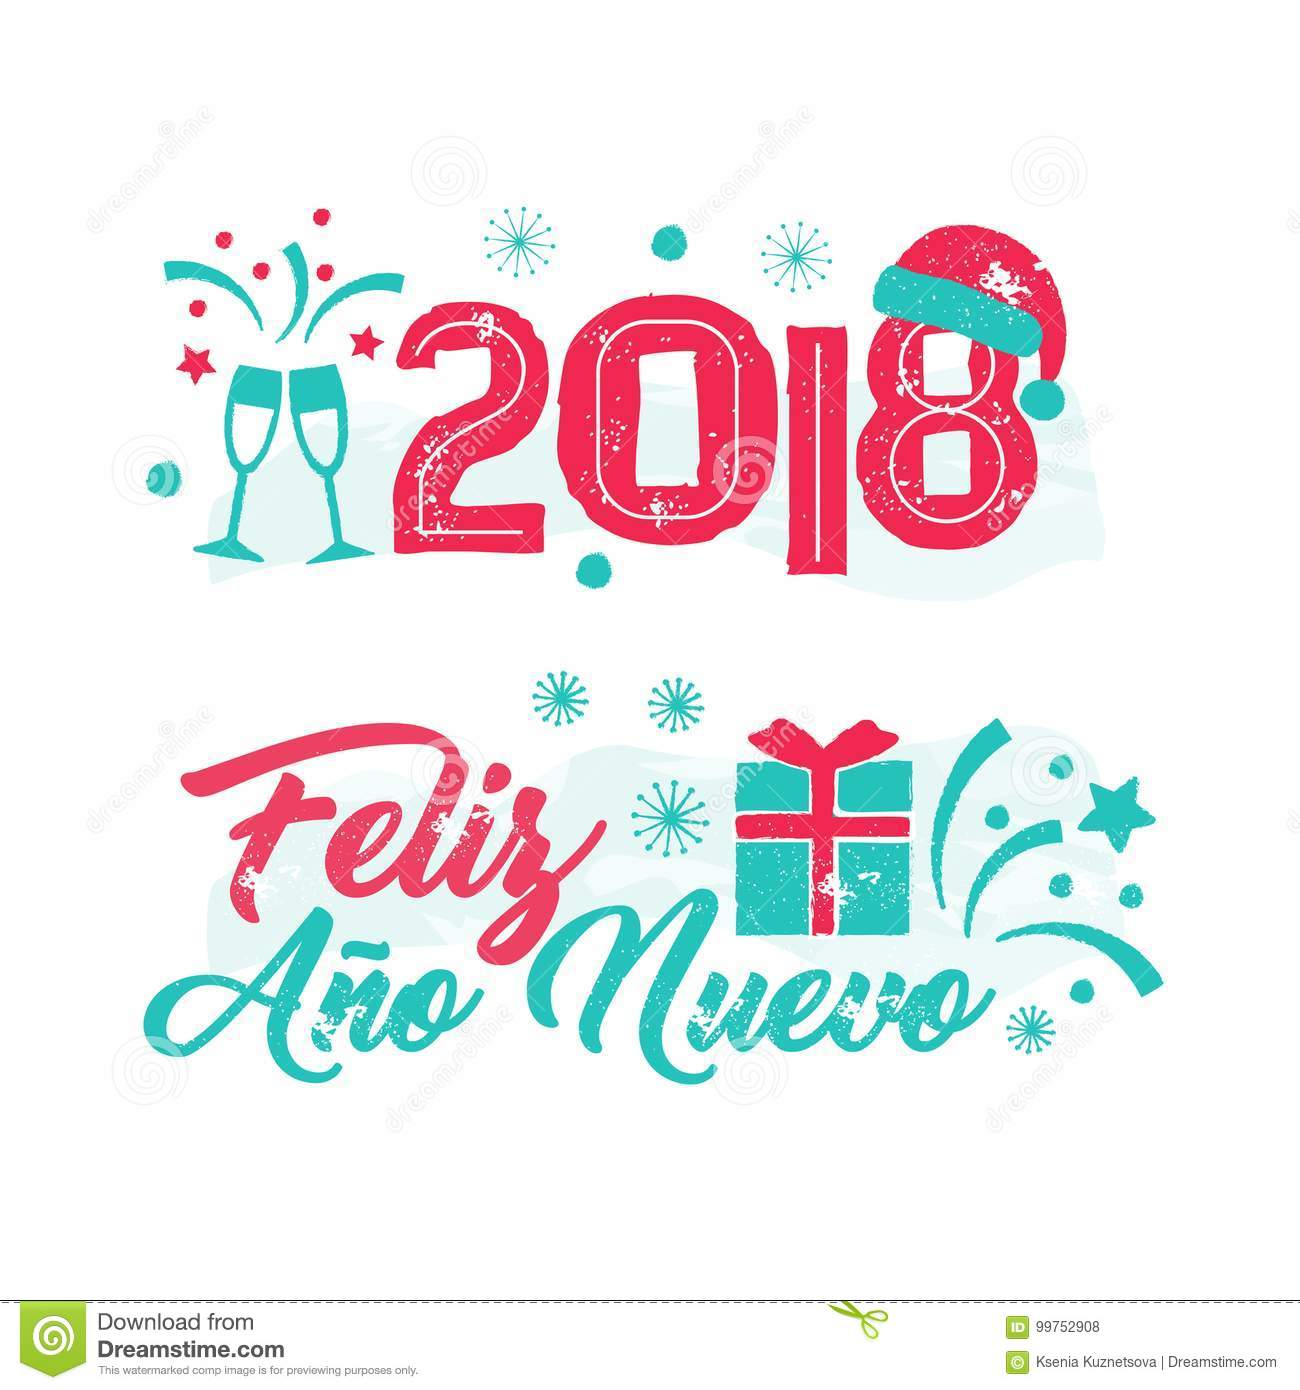 feliz ano nuevo happy new year spanish language